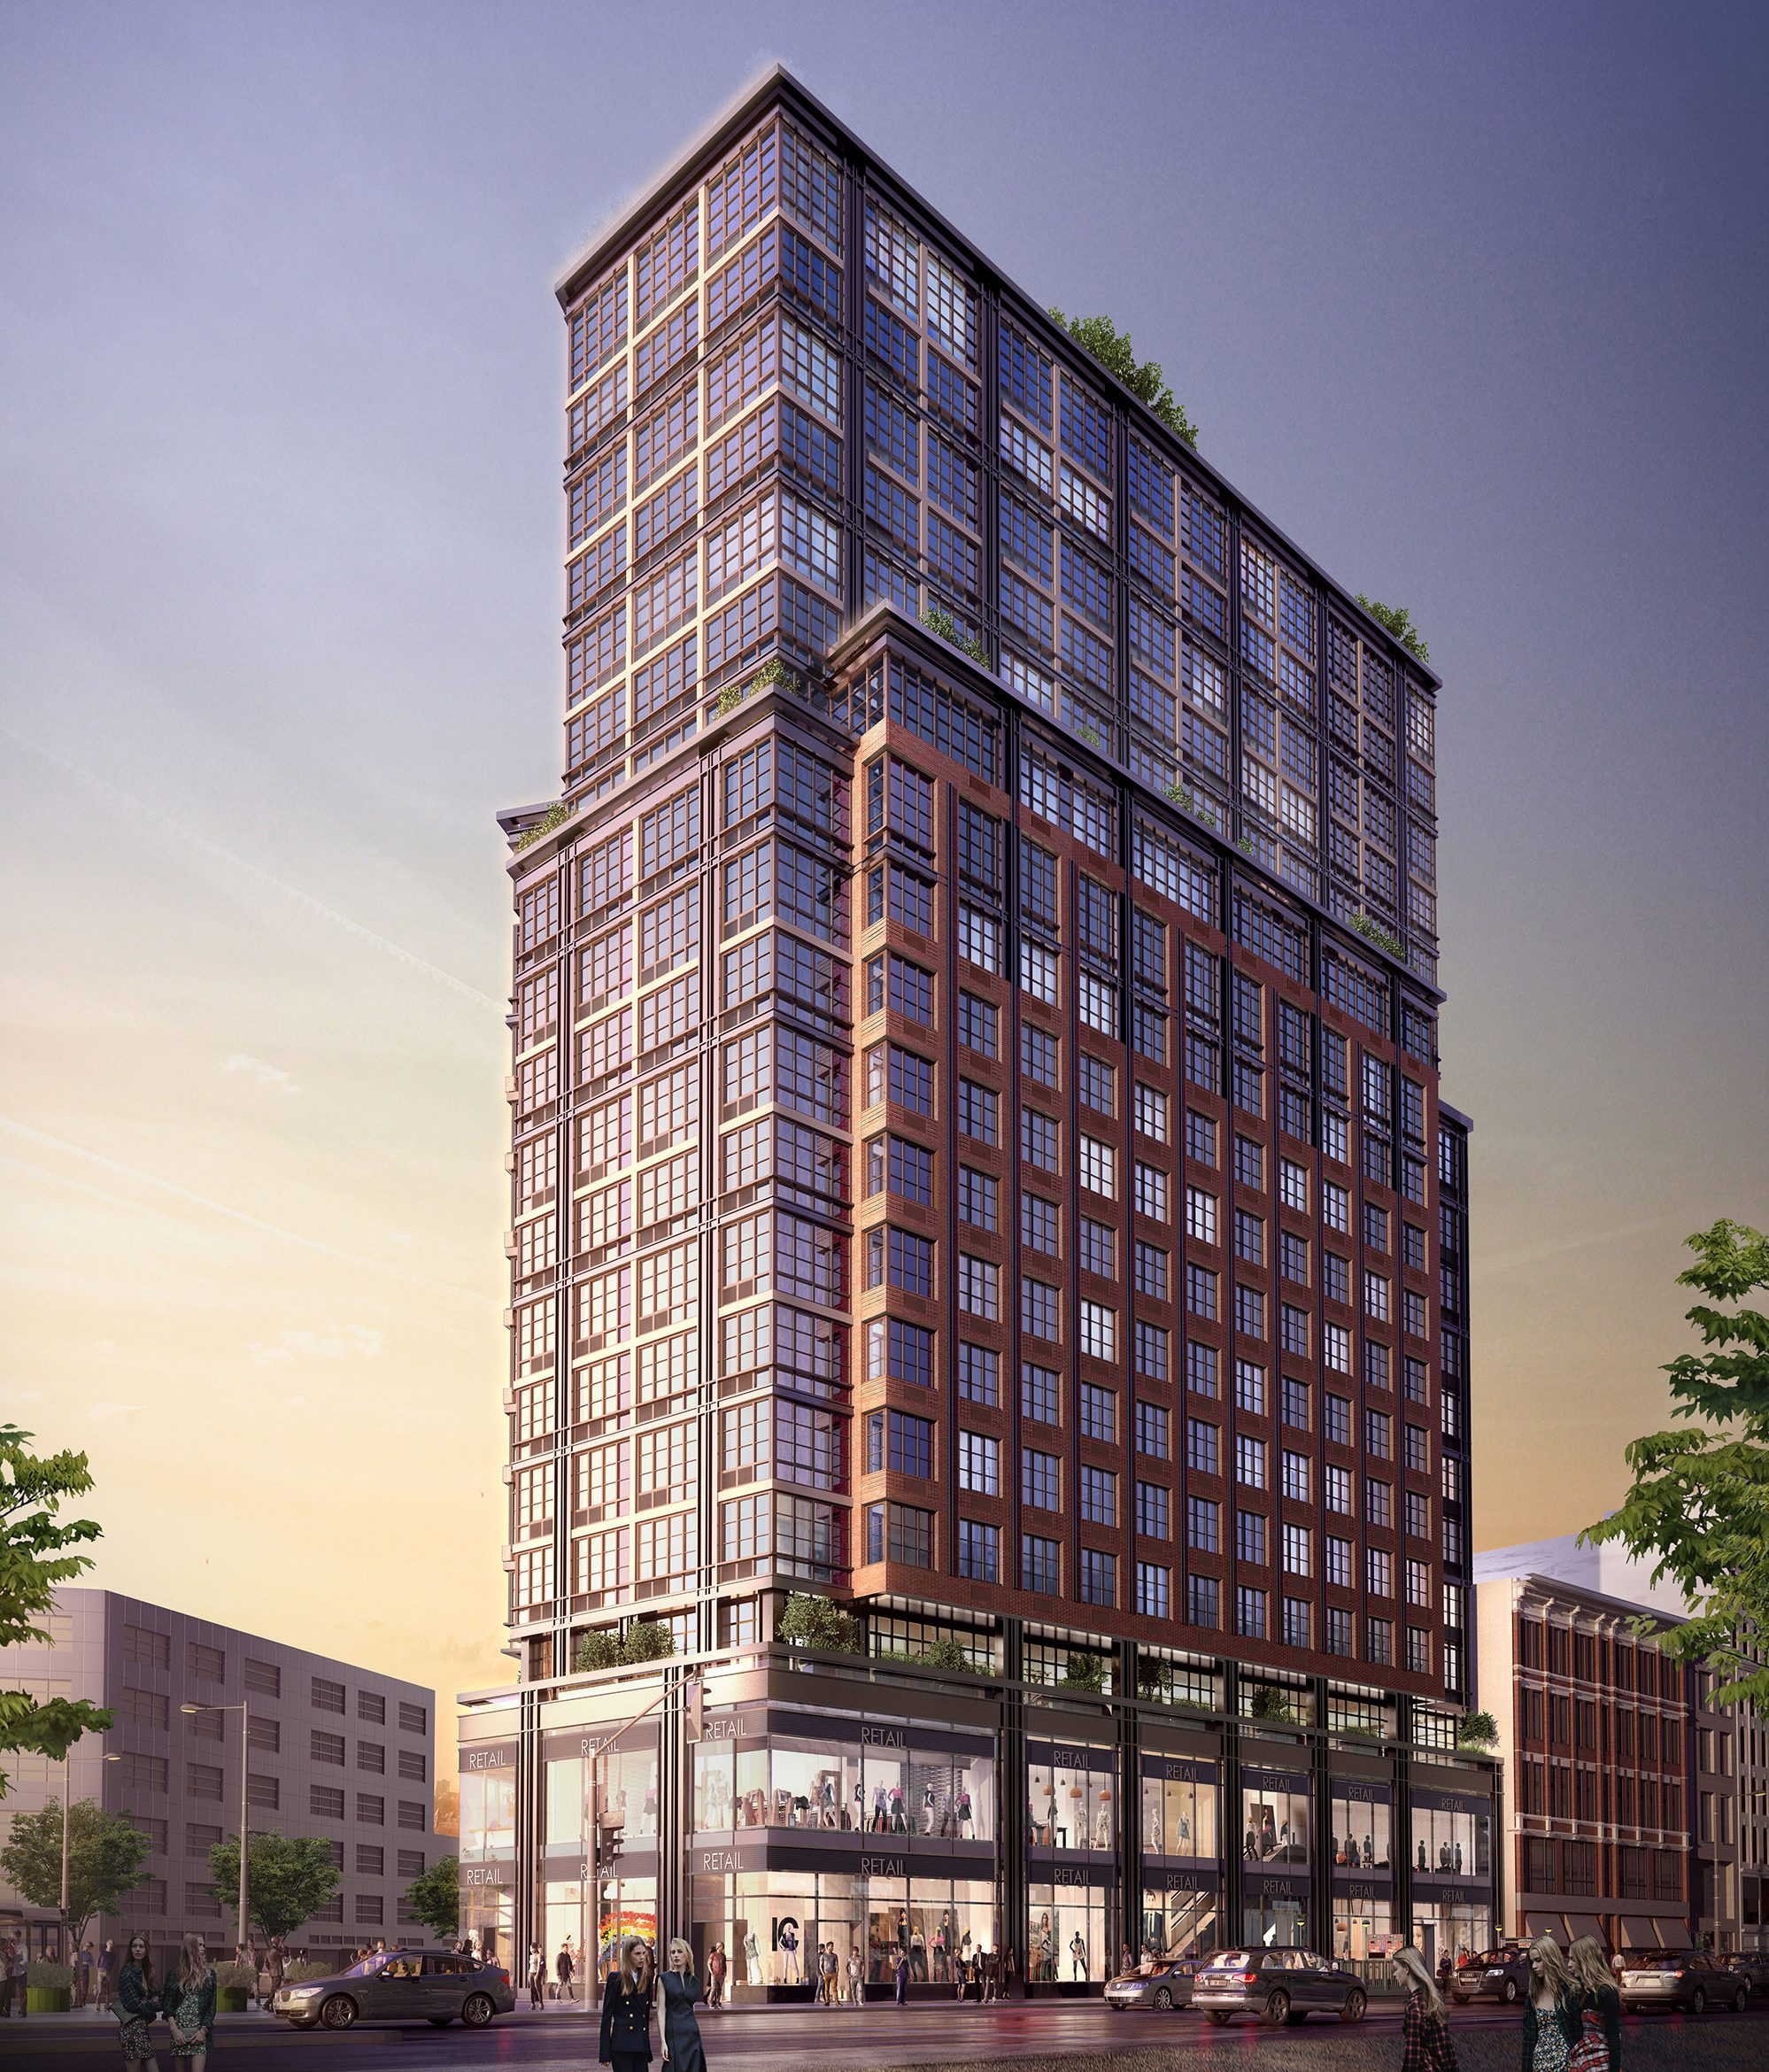 Eleven Madison Park Apartments Westwood Nj: Apply For 37 Affordable Units Right Near The Barclay's